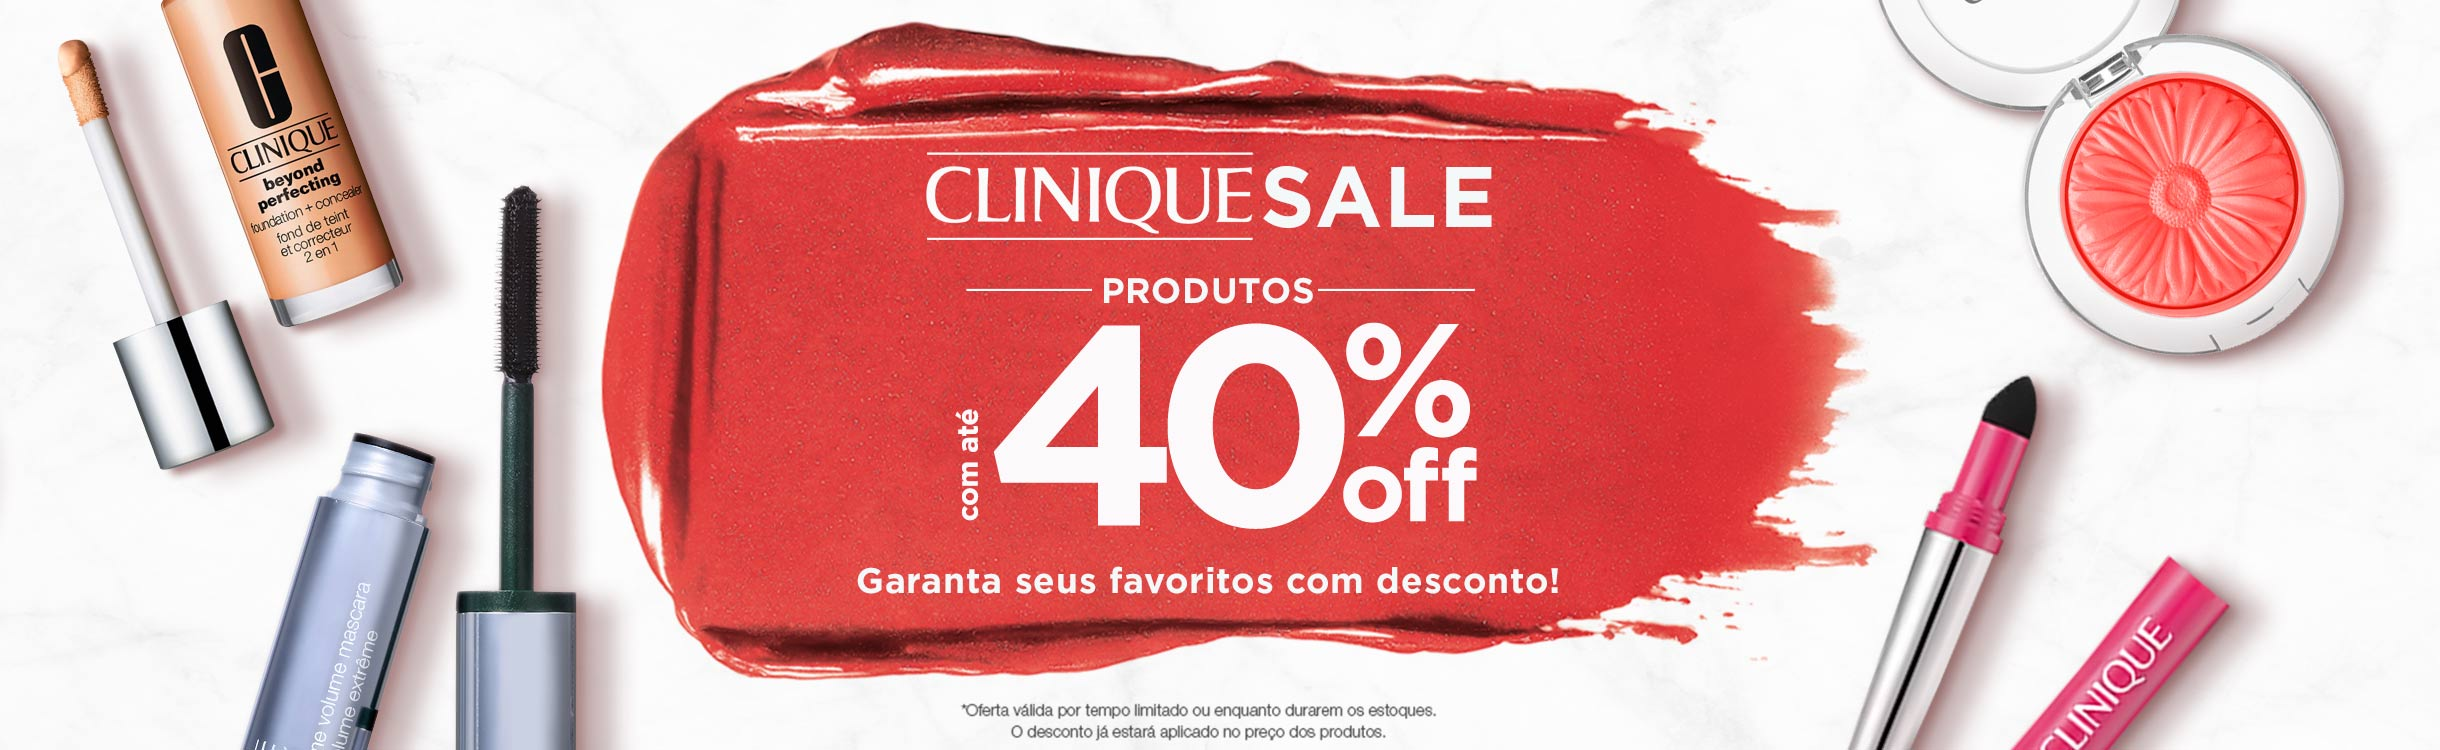 Clinique Sale